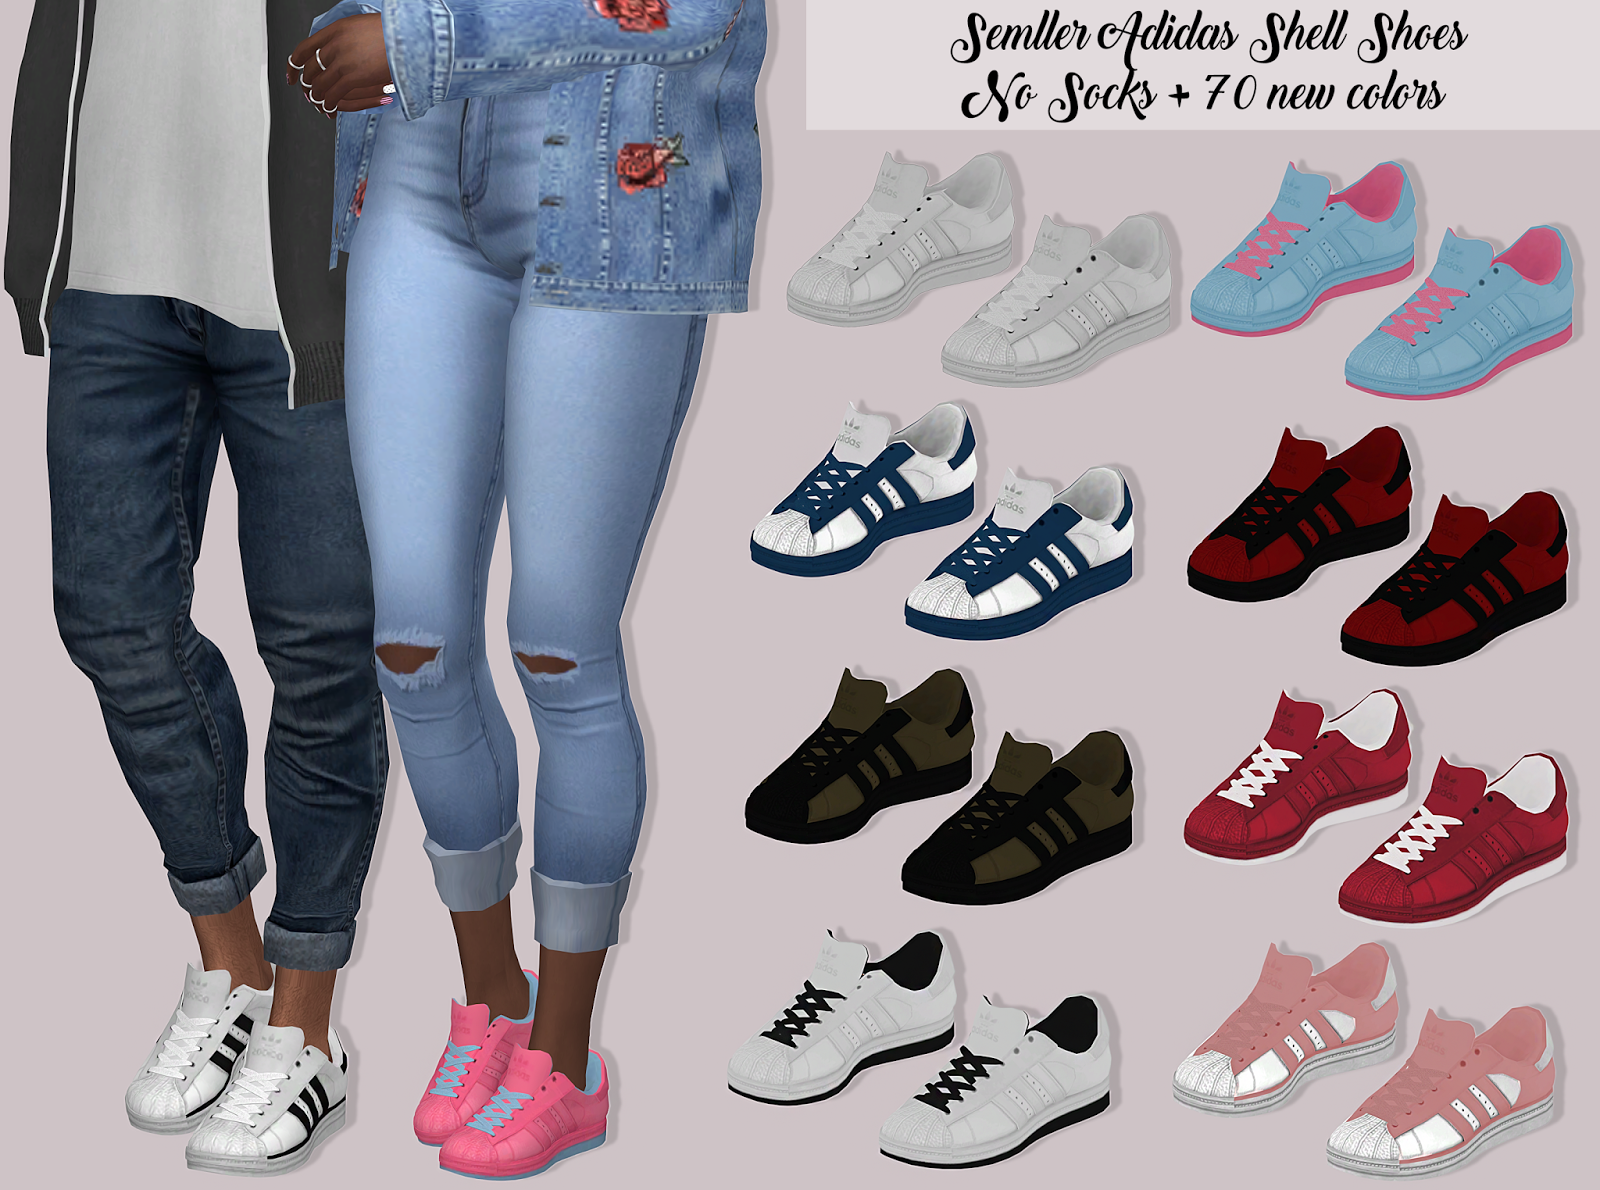 Sims 4 CC's The Best: Shoes by Lumy Sims